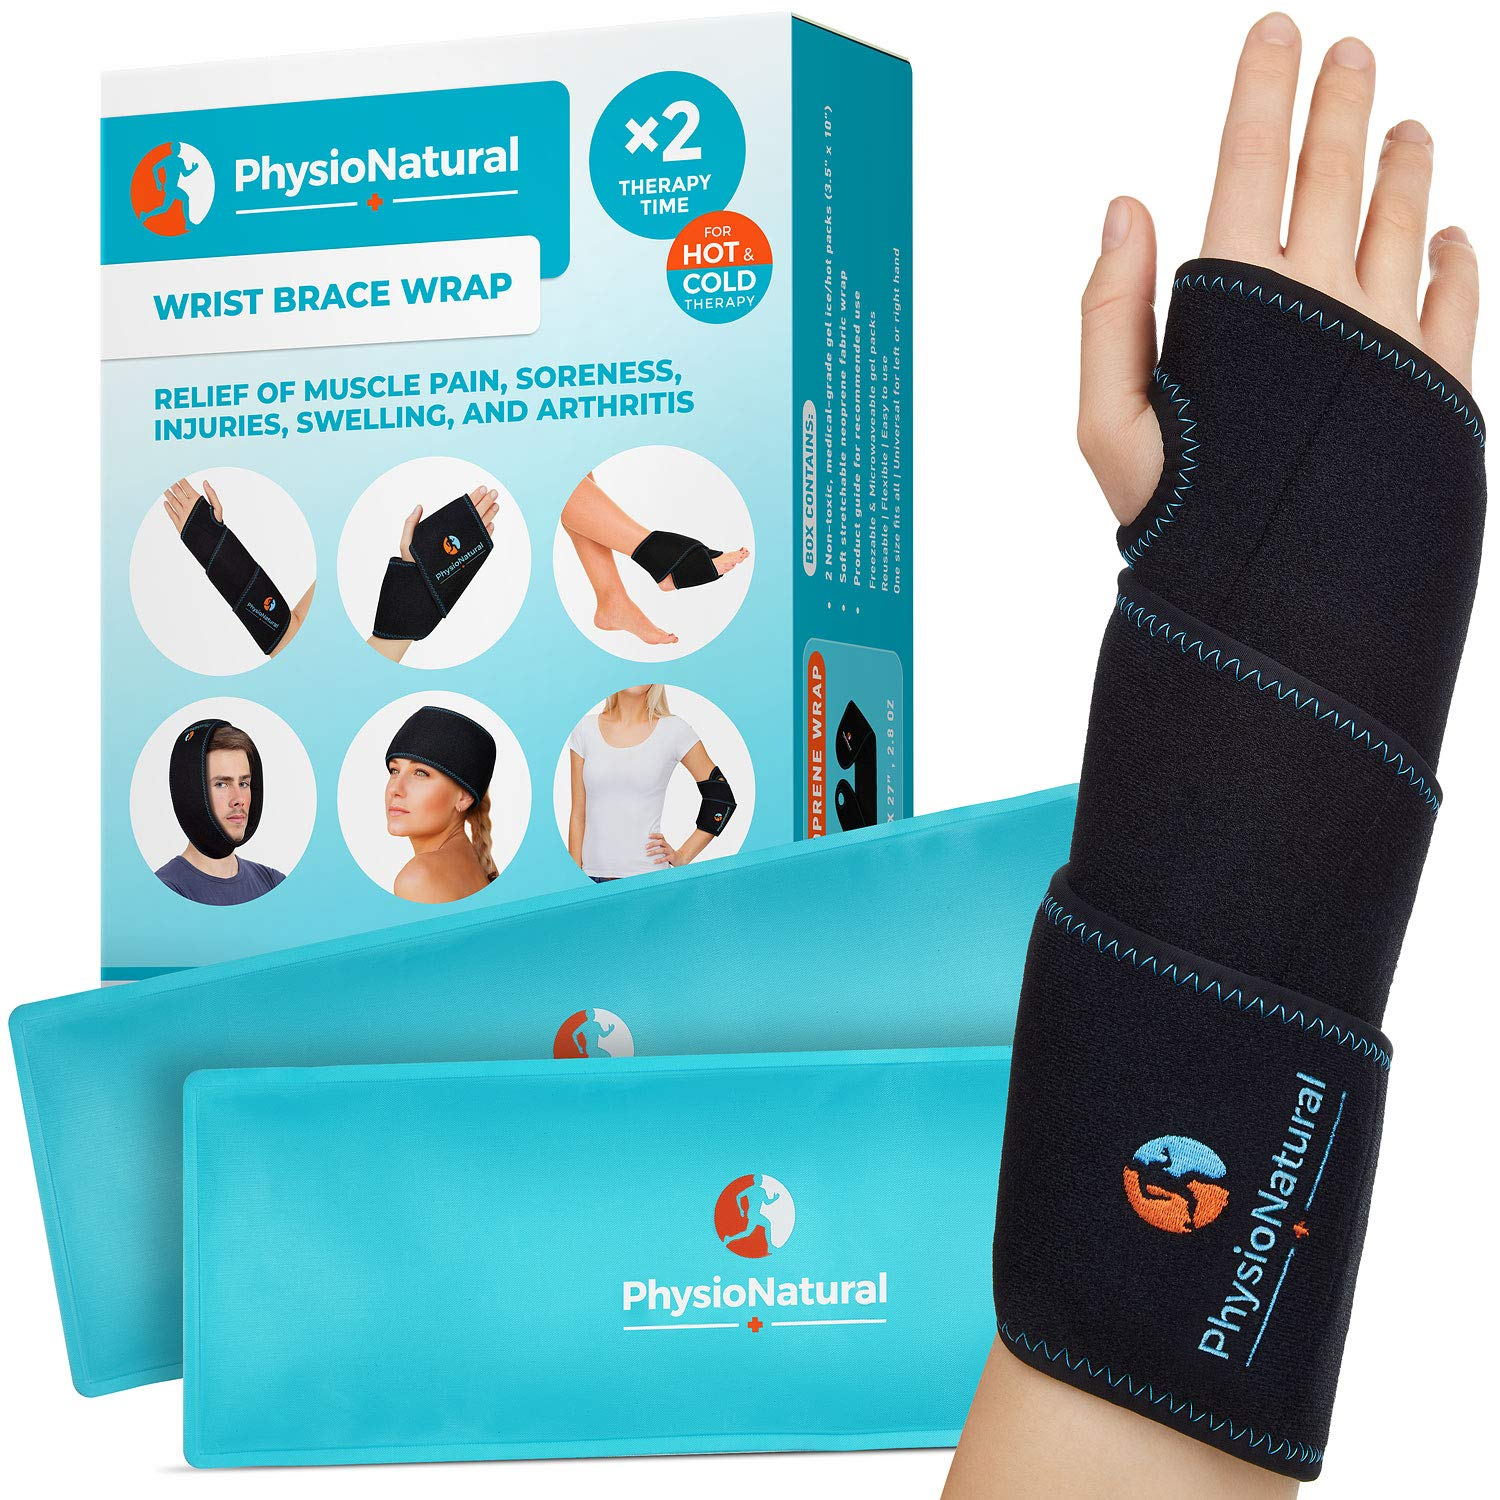 Wrist Ice Pack Wrap - Hot & Cold Therapy for Instant Pain Relief of Carpal Tunnel, Tendonitis, Injuries, Swelling, Rheumatoid Arthritis, Bruises & Sprains - Hand Support Brace with Reusable Gel Packs by PhysioNatural